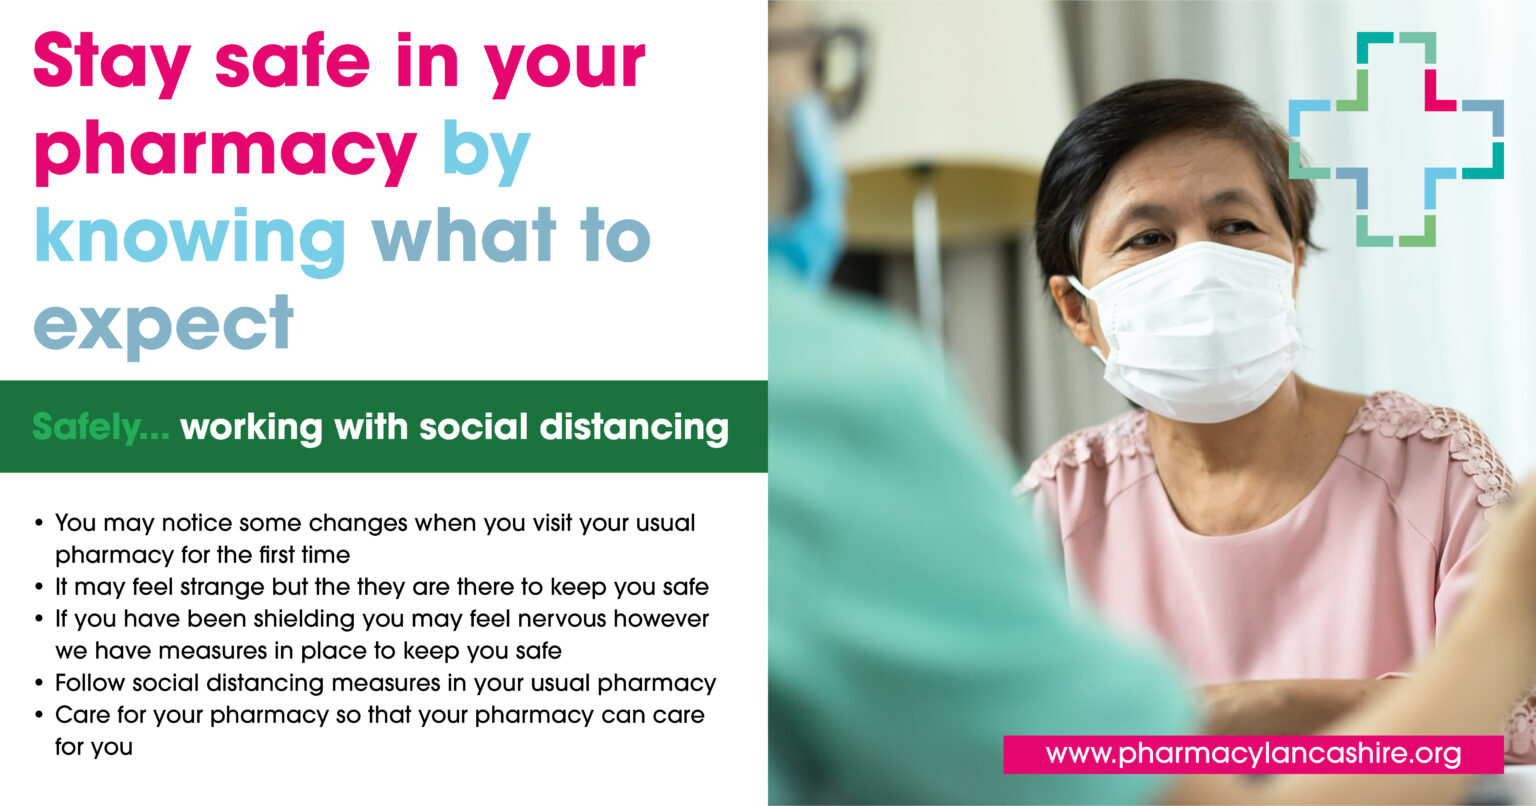 DOSE Design Stay Safe In Your Pharmacy Campaign Community Pharmacy Lancashire Safely working